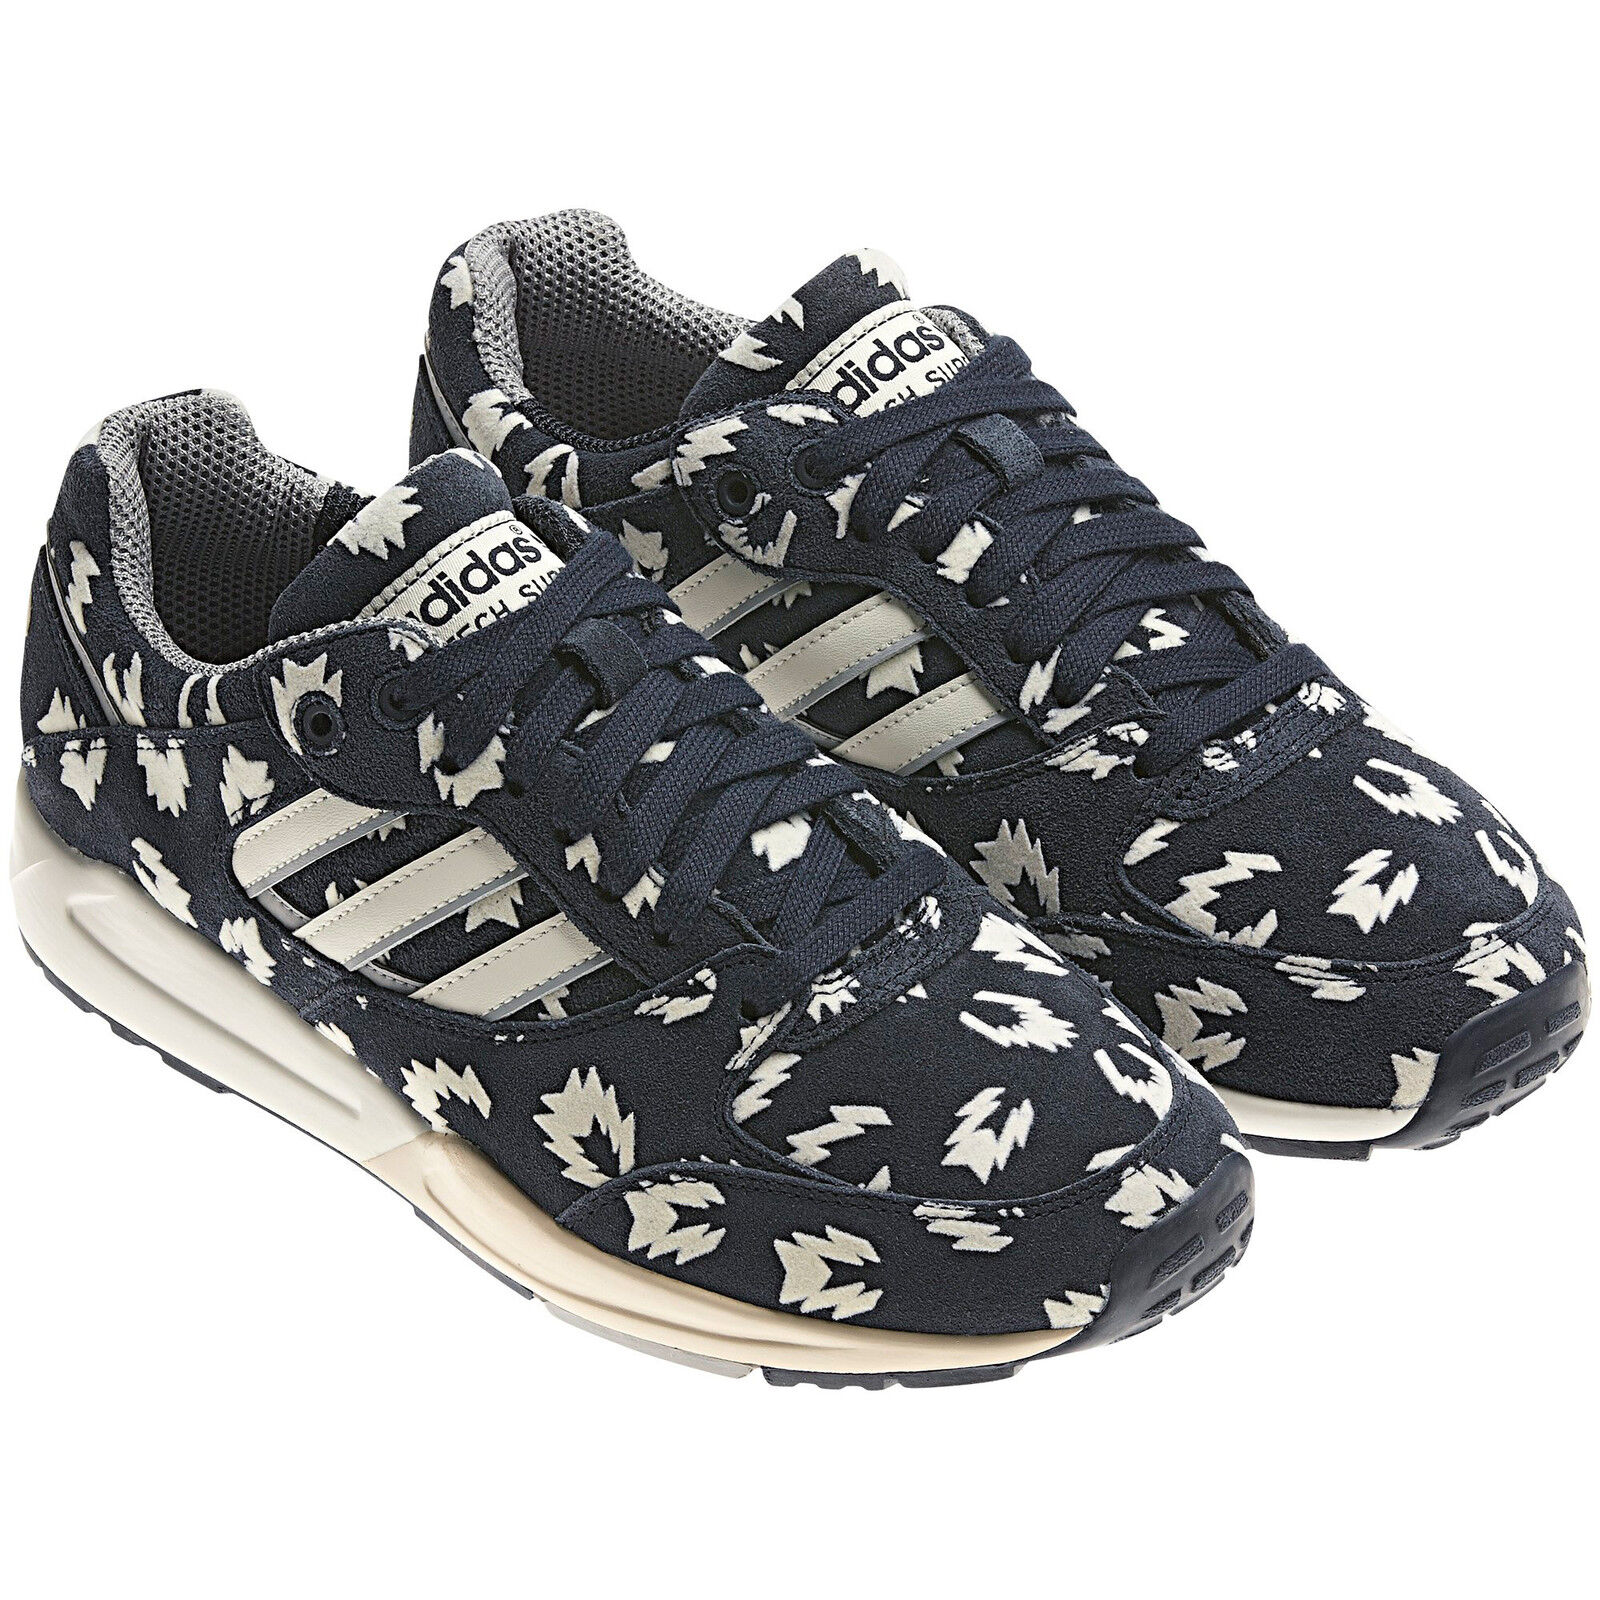 ADIDAS UK ORIGINALS TECH SUPER WOMENS TRAINERS NAVY BLUE SUEDE UK ADIDAS SIZE 4 - 8 5f1488